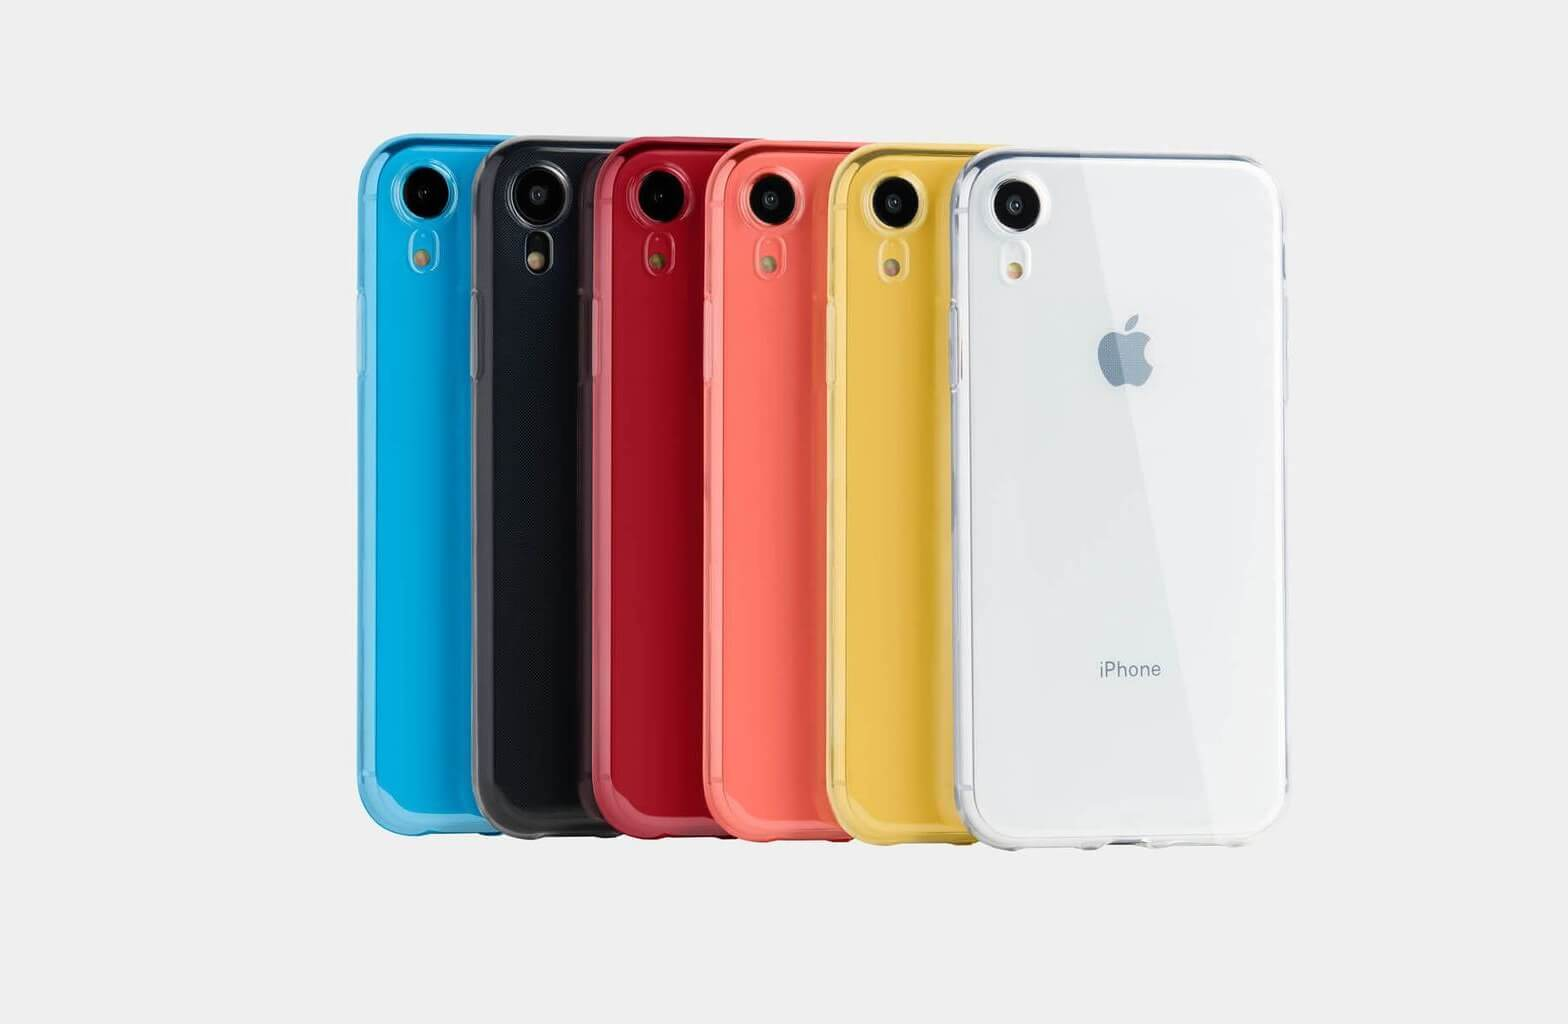 sports shoes 0ecb7 a834d Here are the best iPhone XR cases you can buy right now